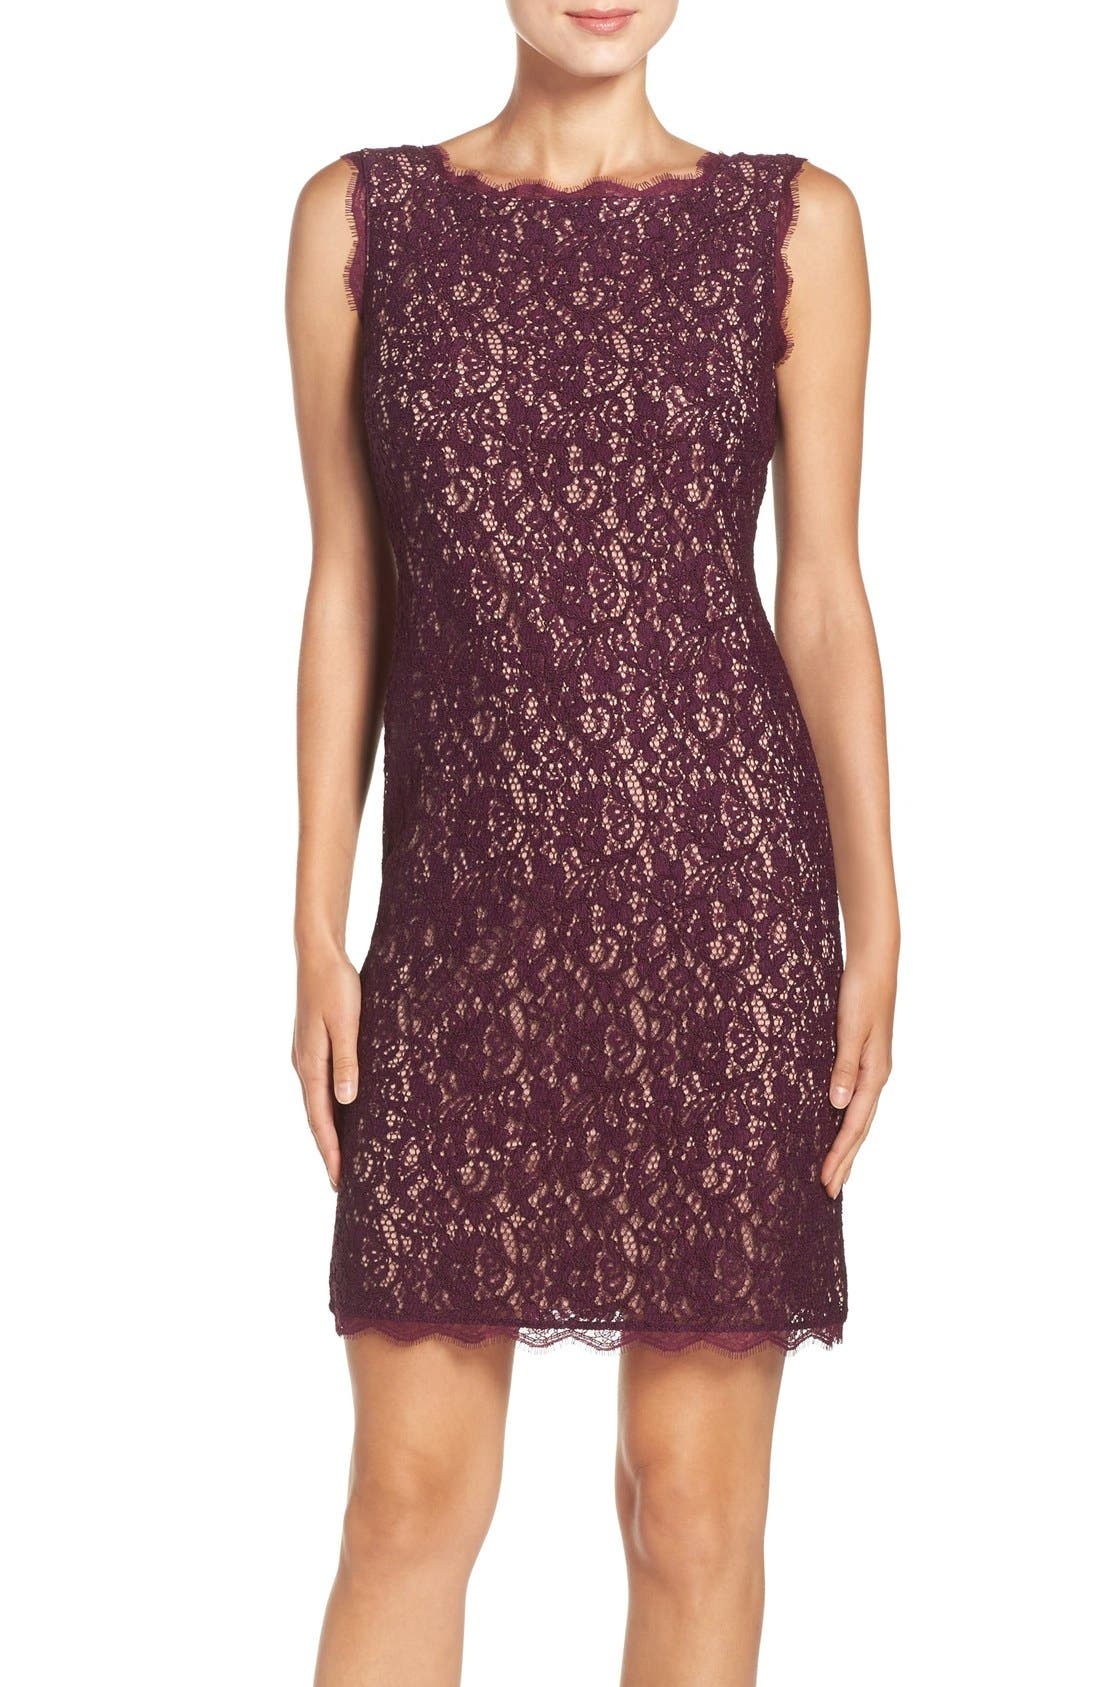 Boatneck Lace Sheath Dress,                             Main thumbnail 1, color,                             Mulberry Nude